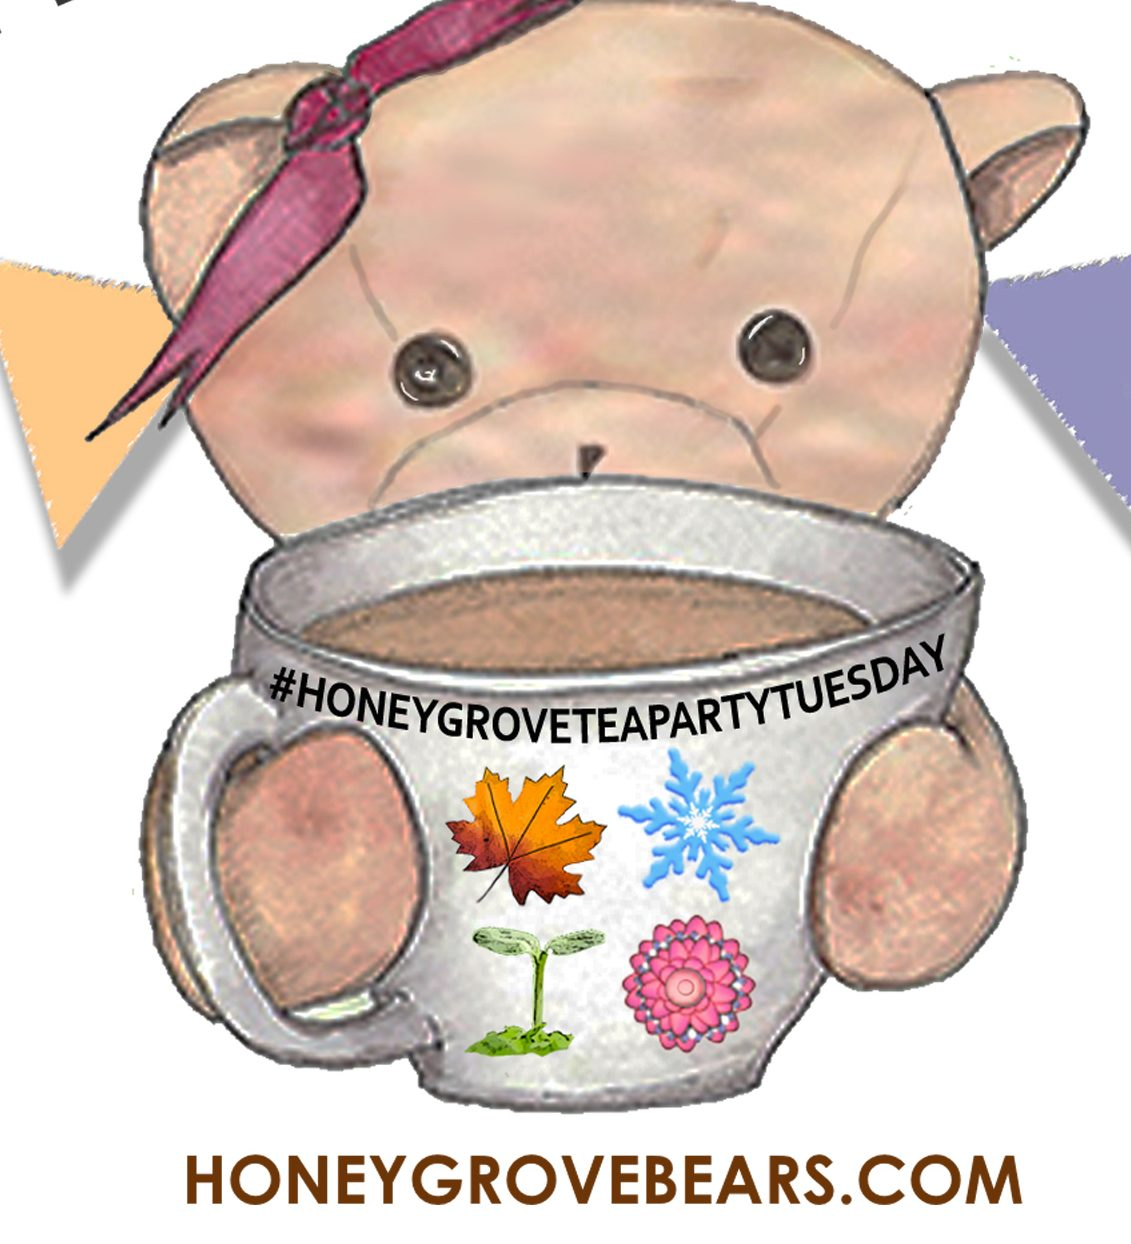 Bears of Honey Grove